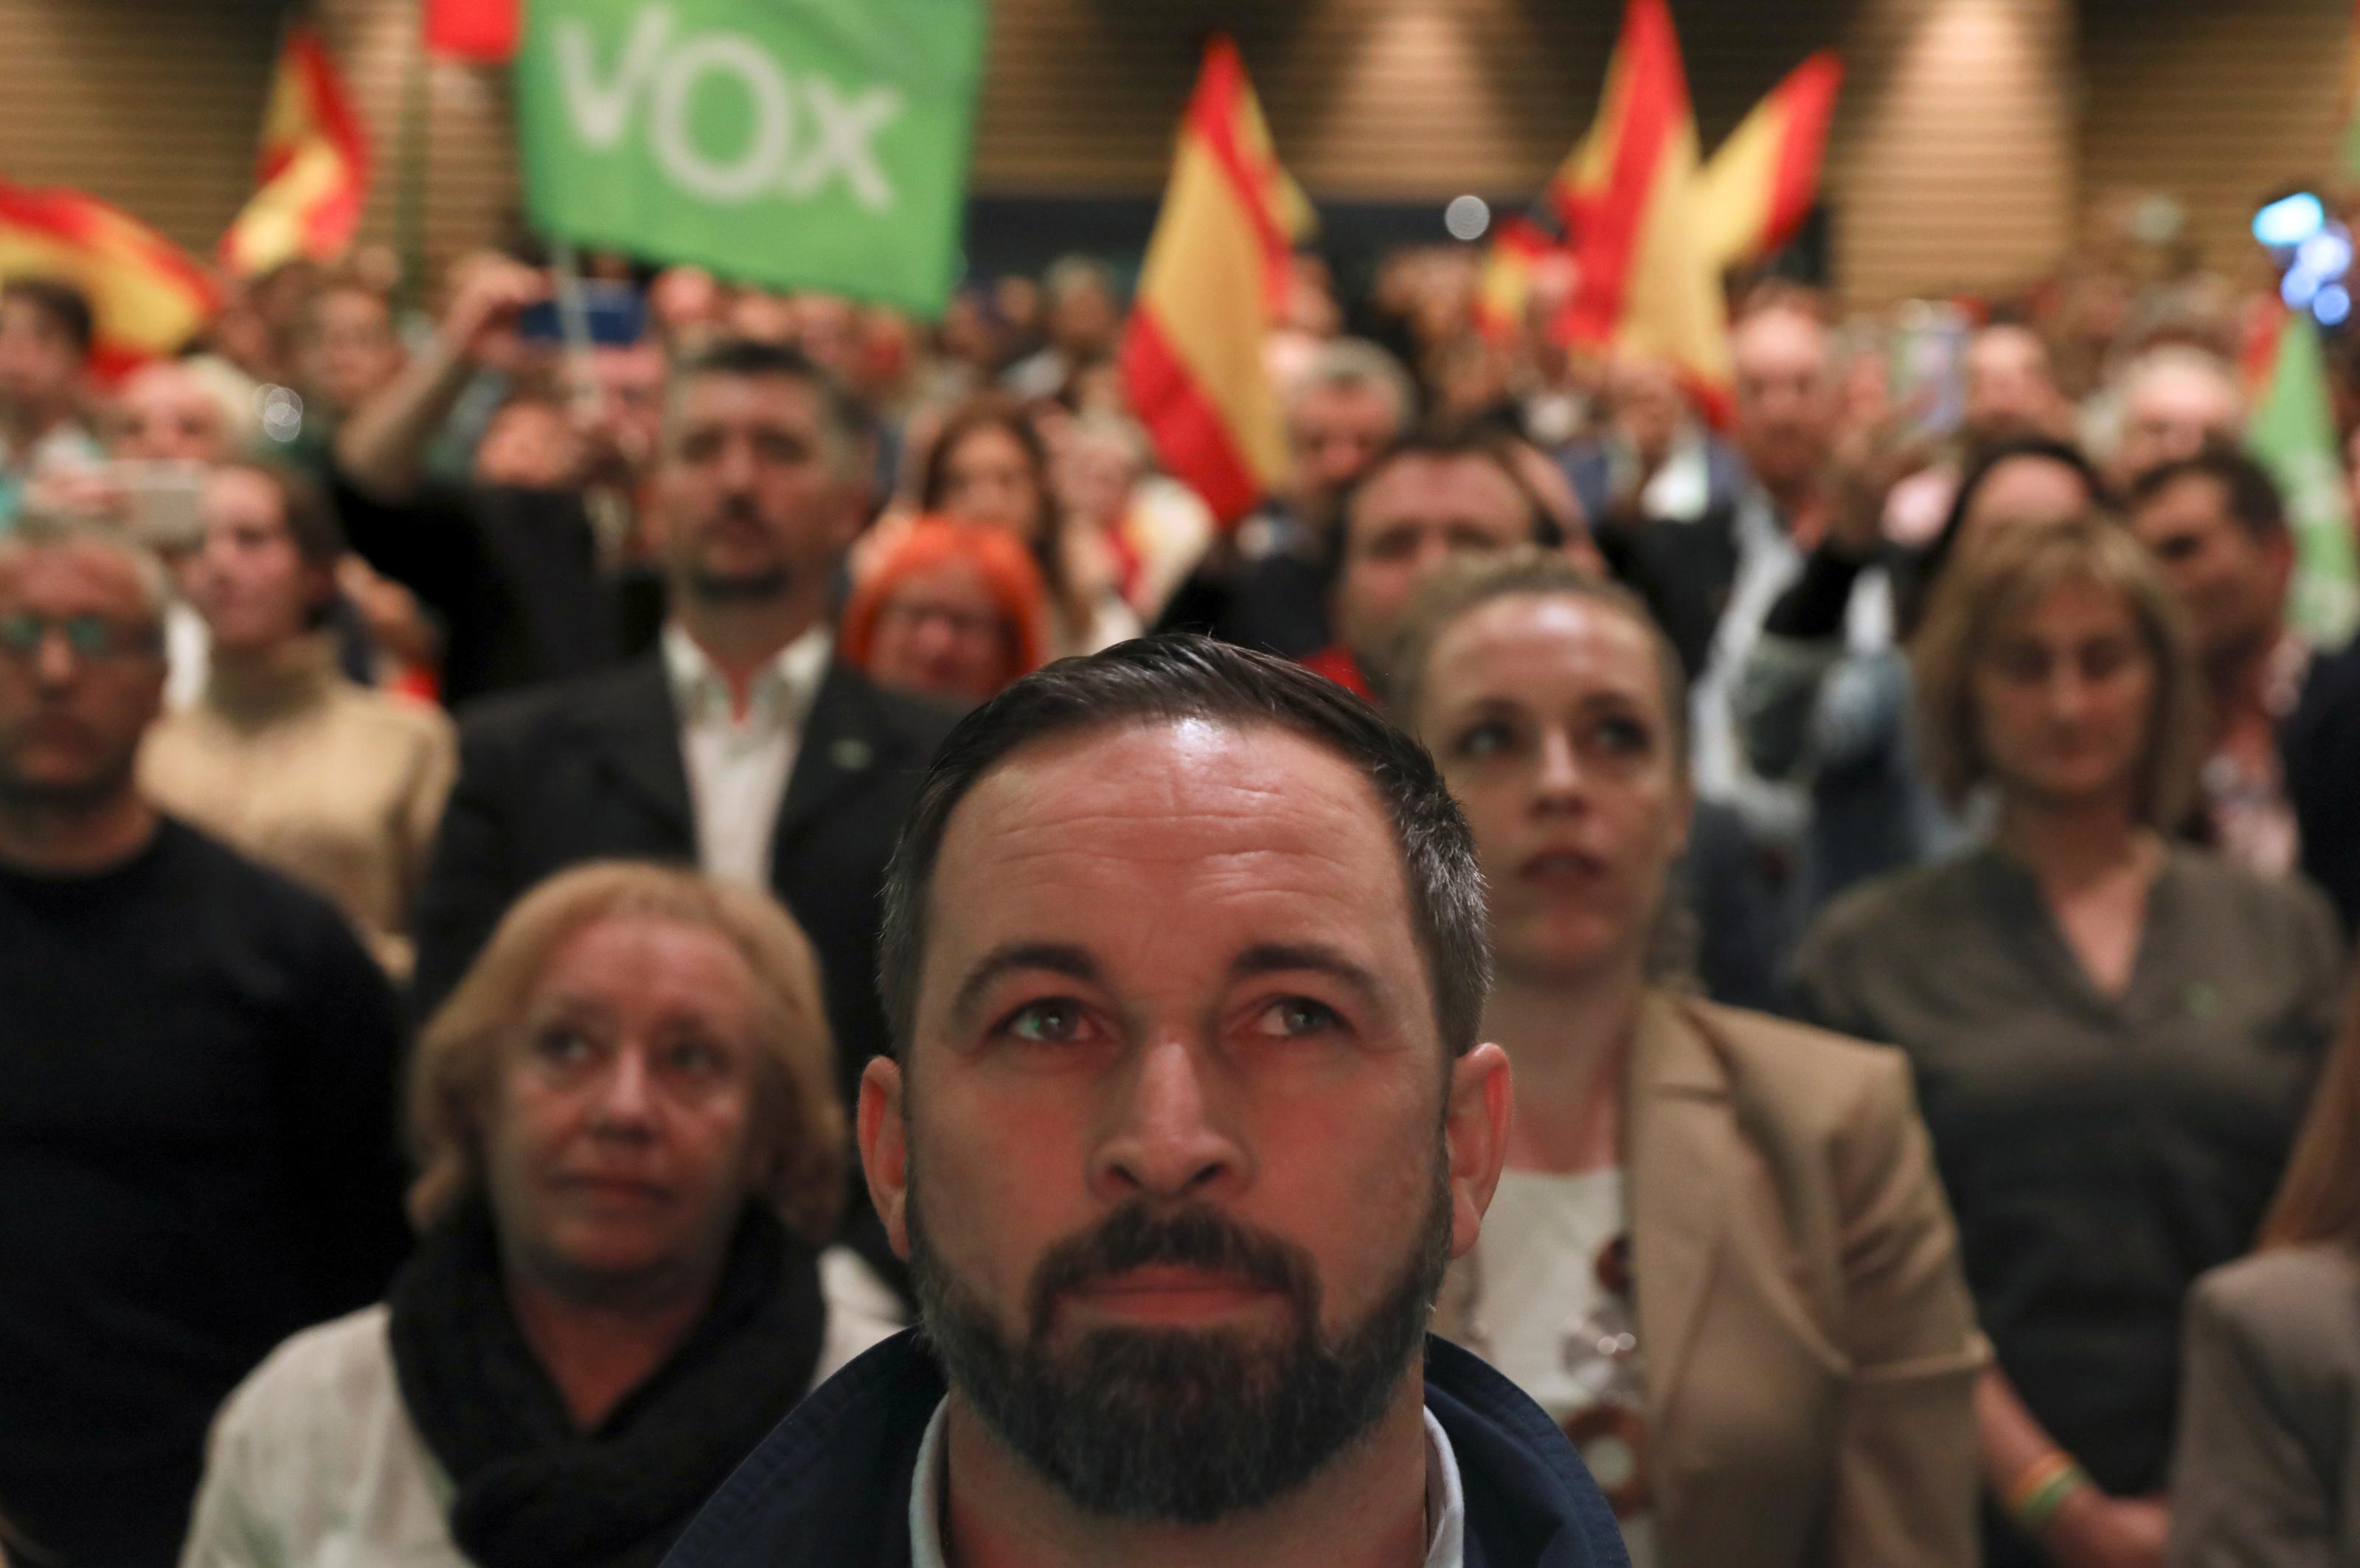 2019-04-11T193737Z_200847590_RC13CD844CD0_RTRMADP_3_SPAIN-ELECTION-VOX%281%29_0.JPG